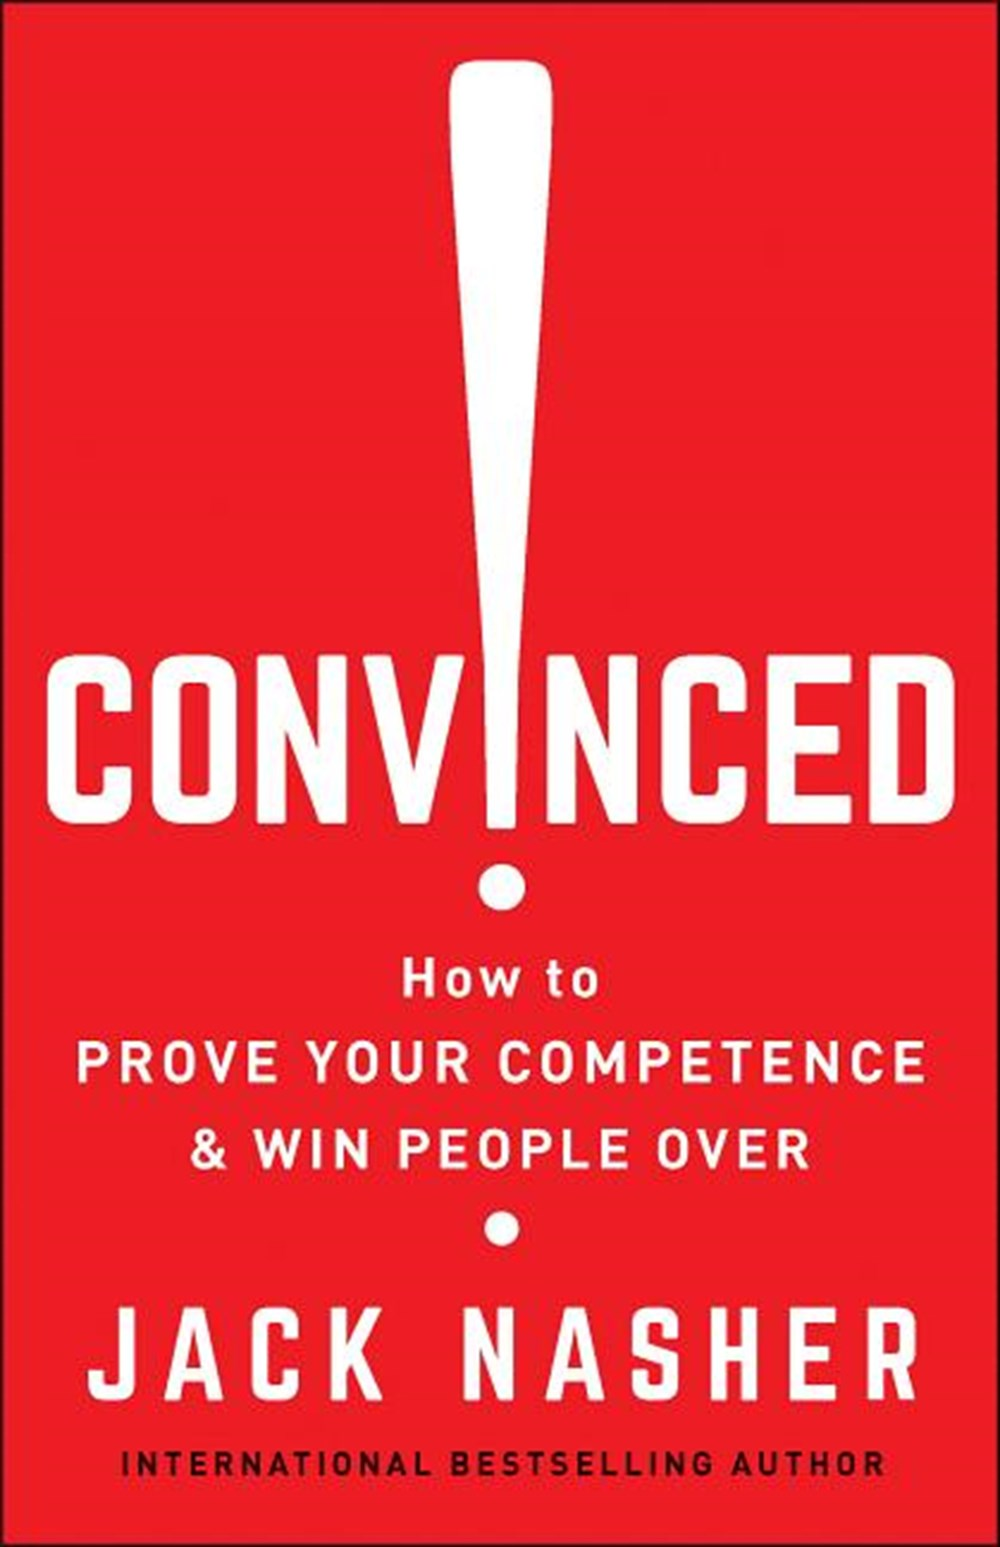 Convinced! How to Prove Your Competence & Win People Over